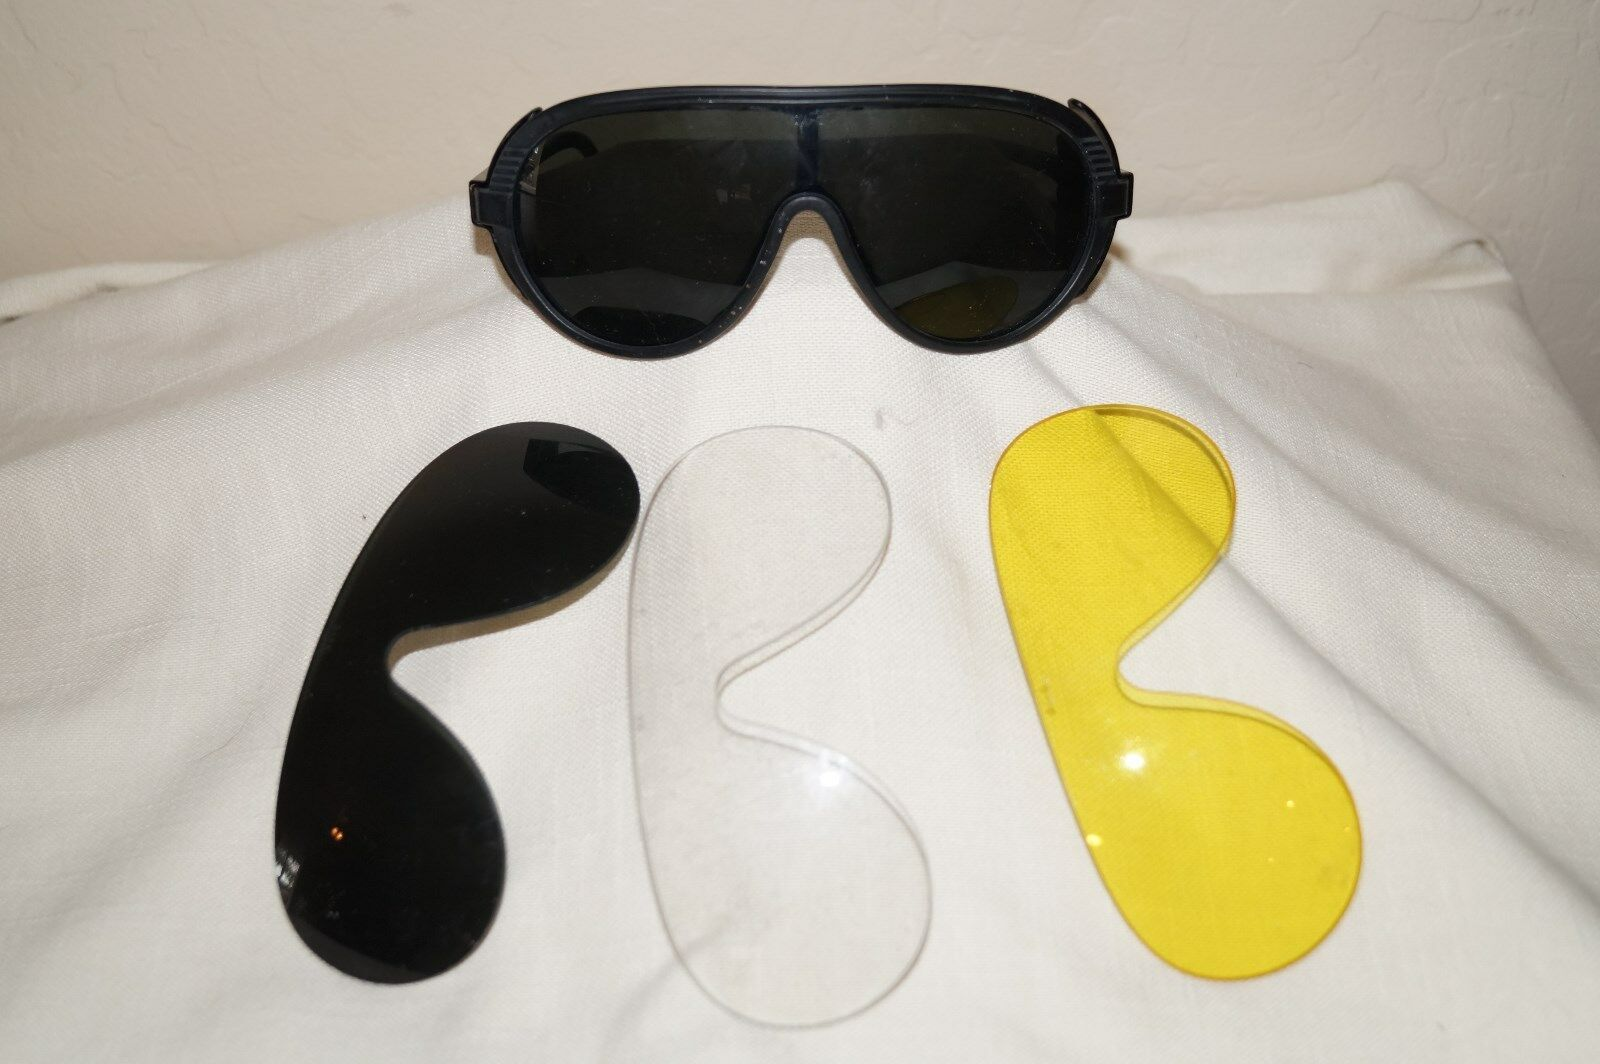 Vintage  Porker  Riding Sunglasses with 4 changeable lenses  clear,yellow,dark(2)  export outlet